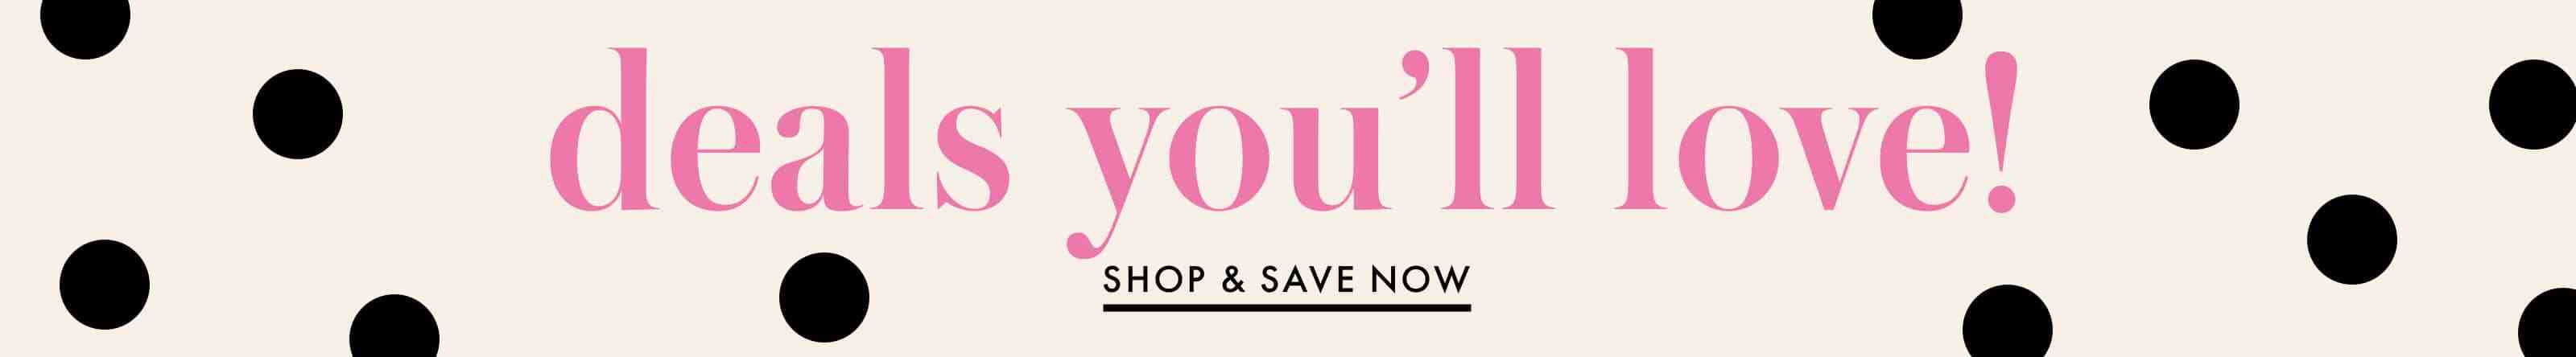 deals you'll love! shop & save now